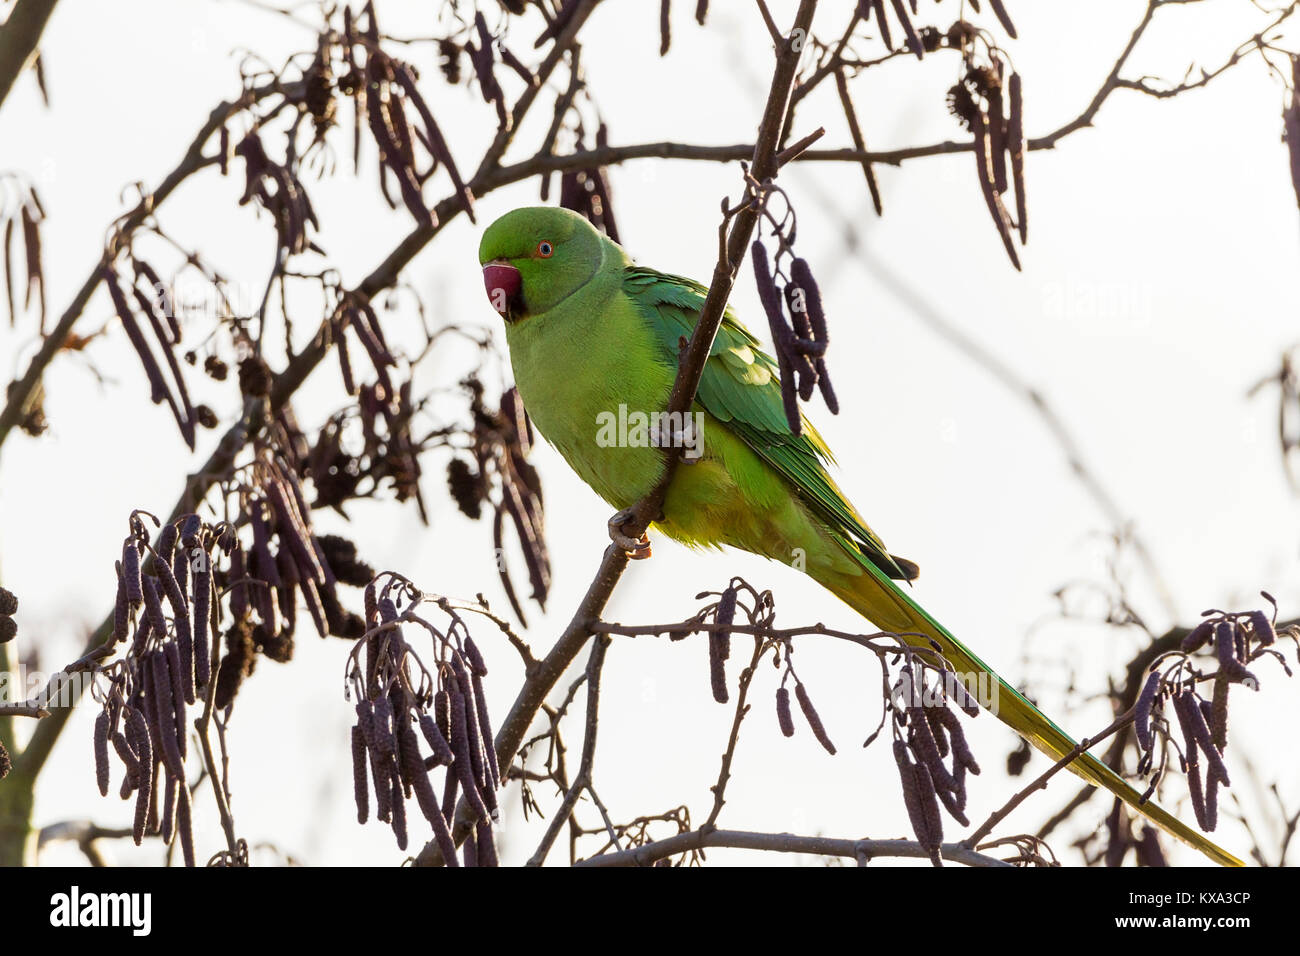 Green parrot in tree at London wetland centre. Red bill dark and light green lime coloured plumage now familiar - Stock Image